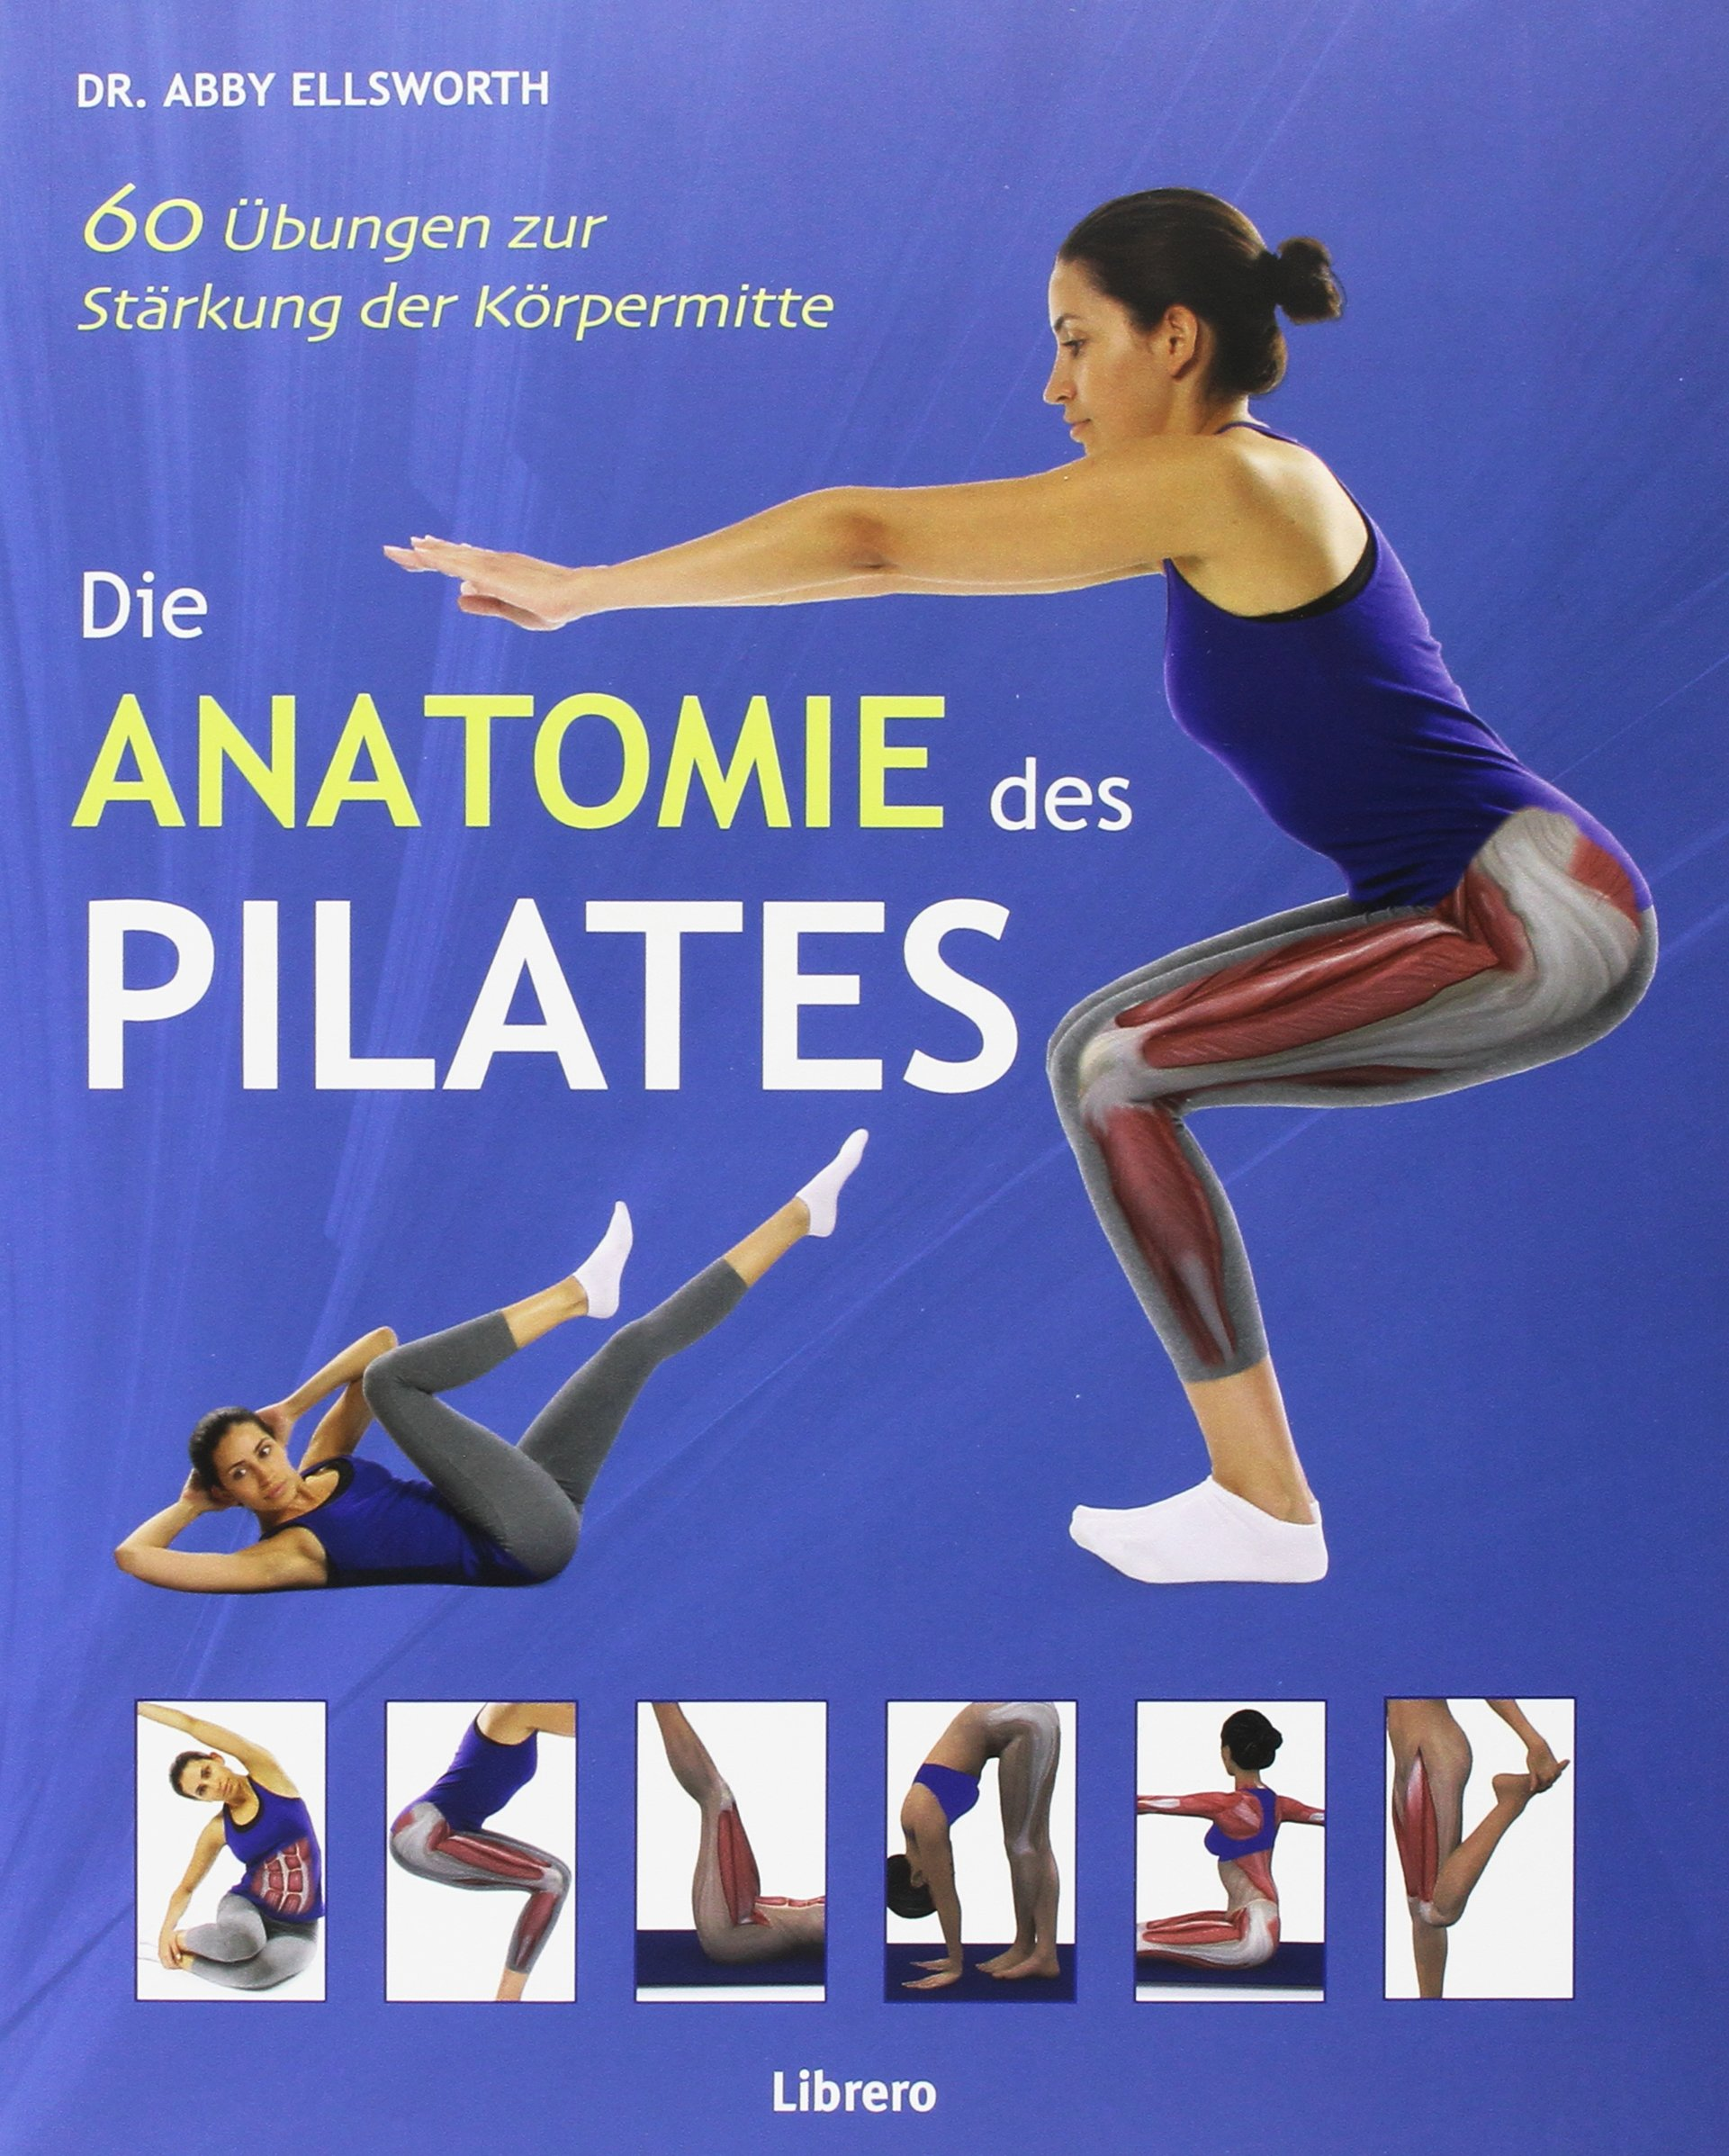 DIE ANATOMIE DES PILATES: Amazon.de: DR. ABIGAIL ELLSWORTH: Bücher